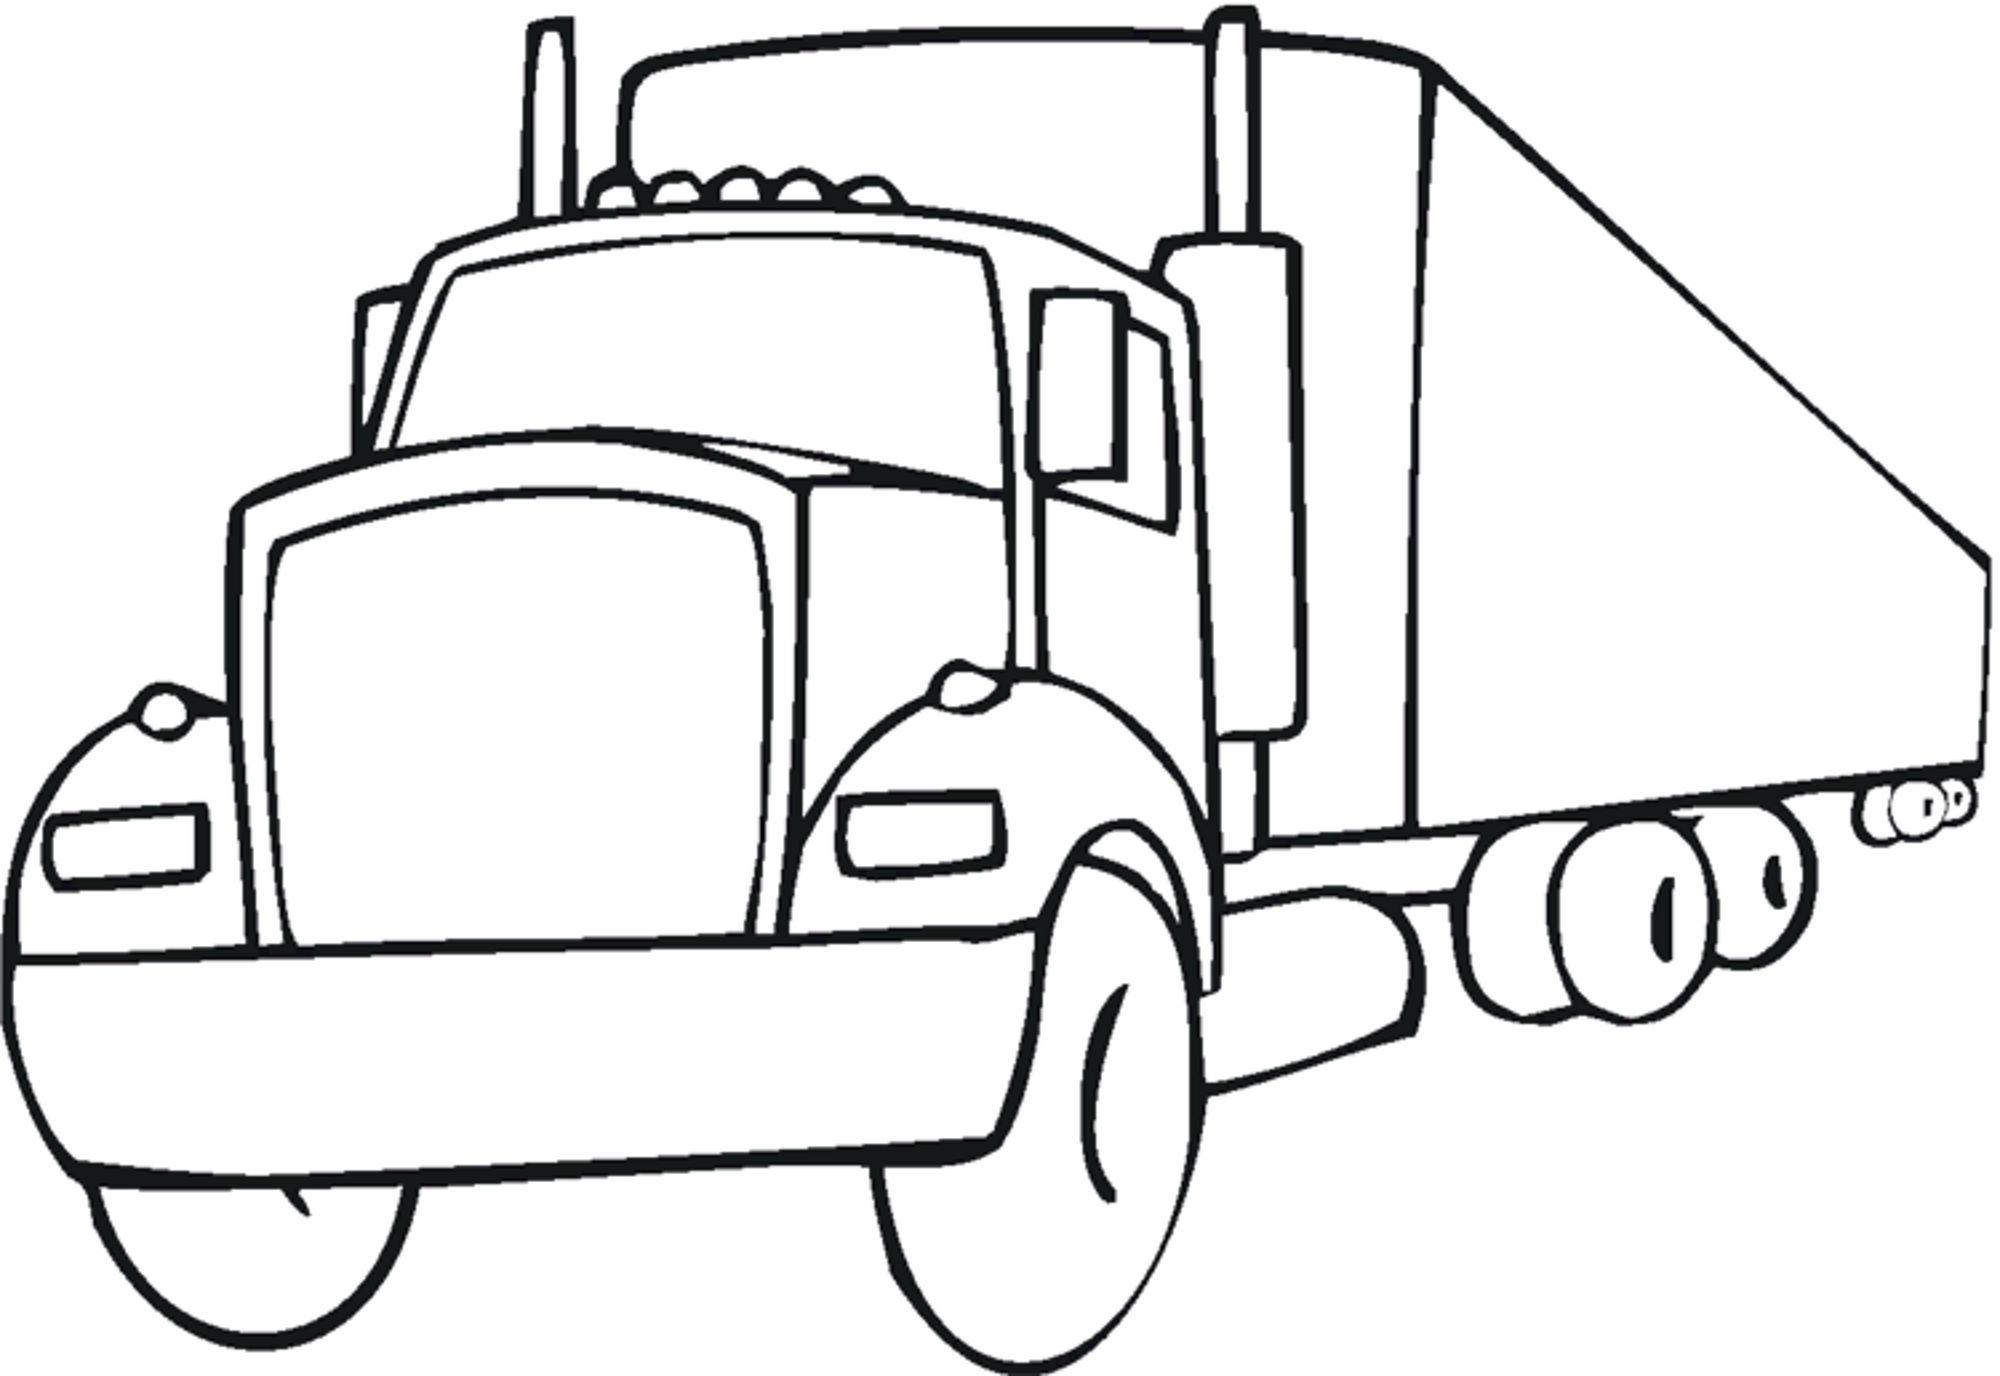 2000x1376 Coloring Semi Truck Page Regarding Decorations 5